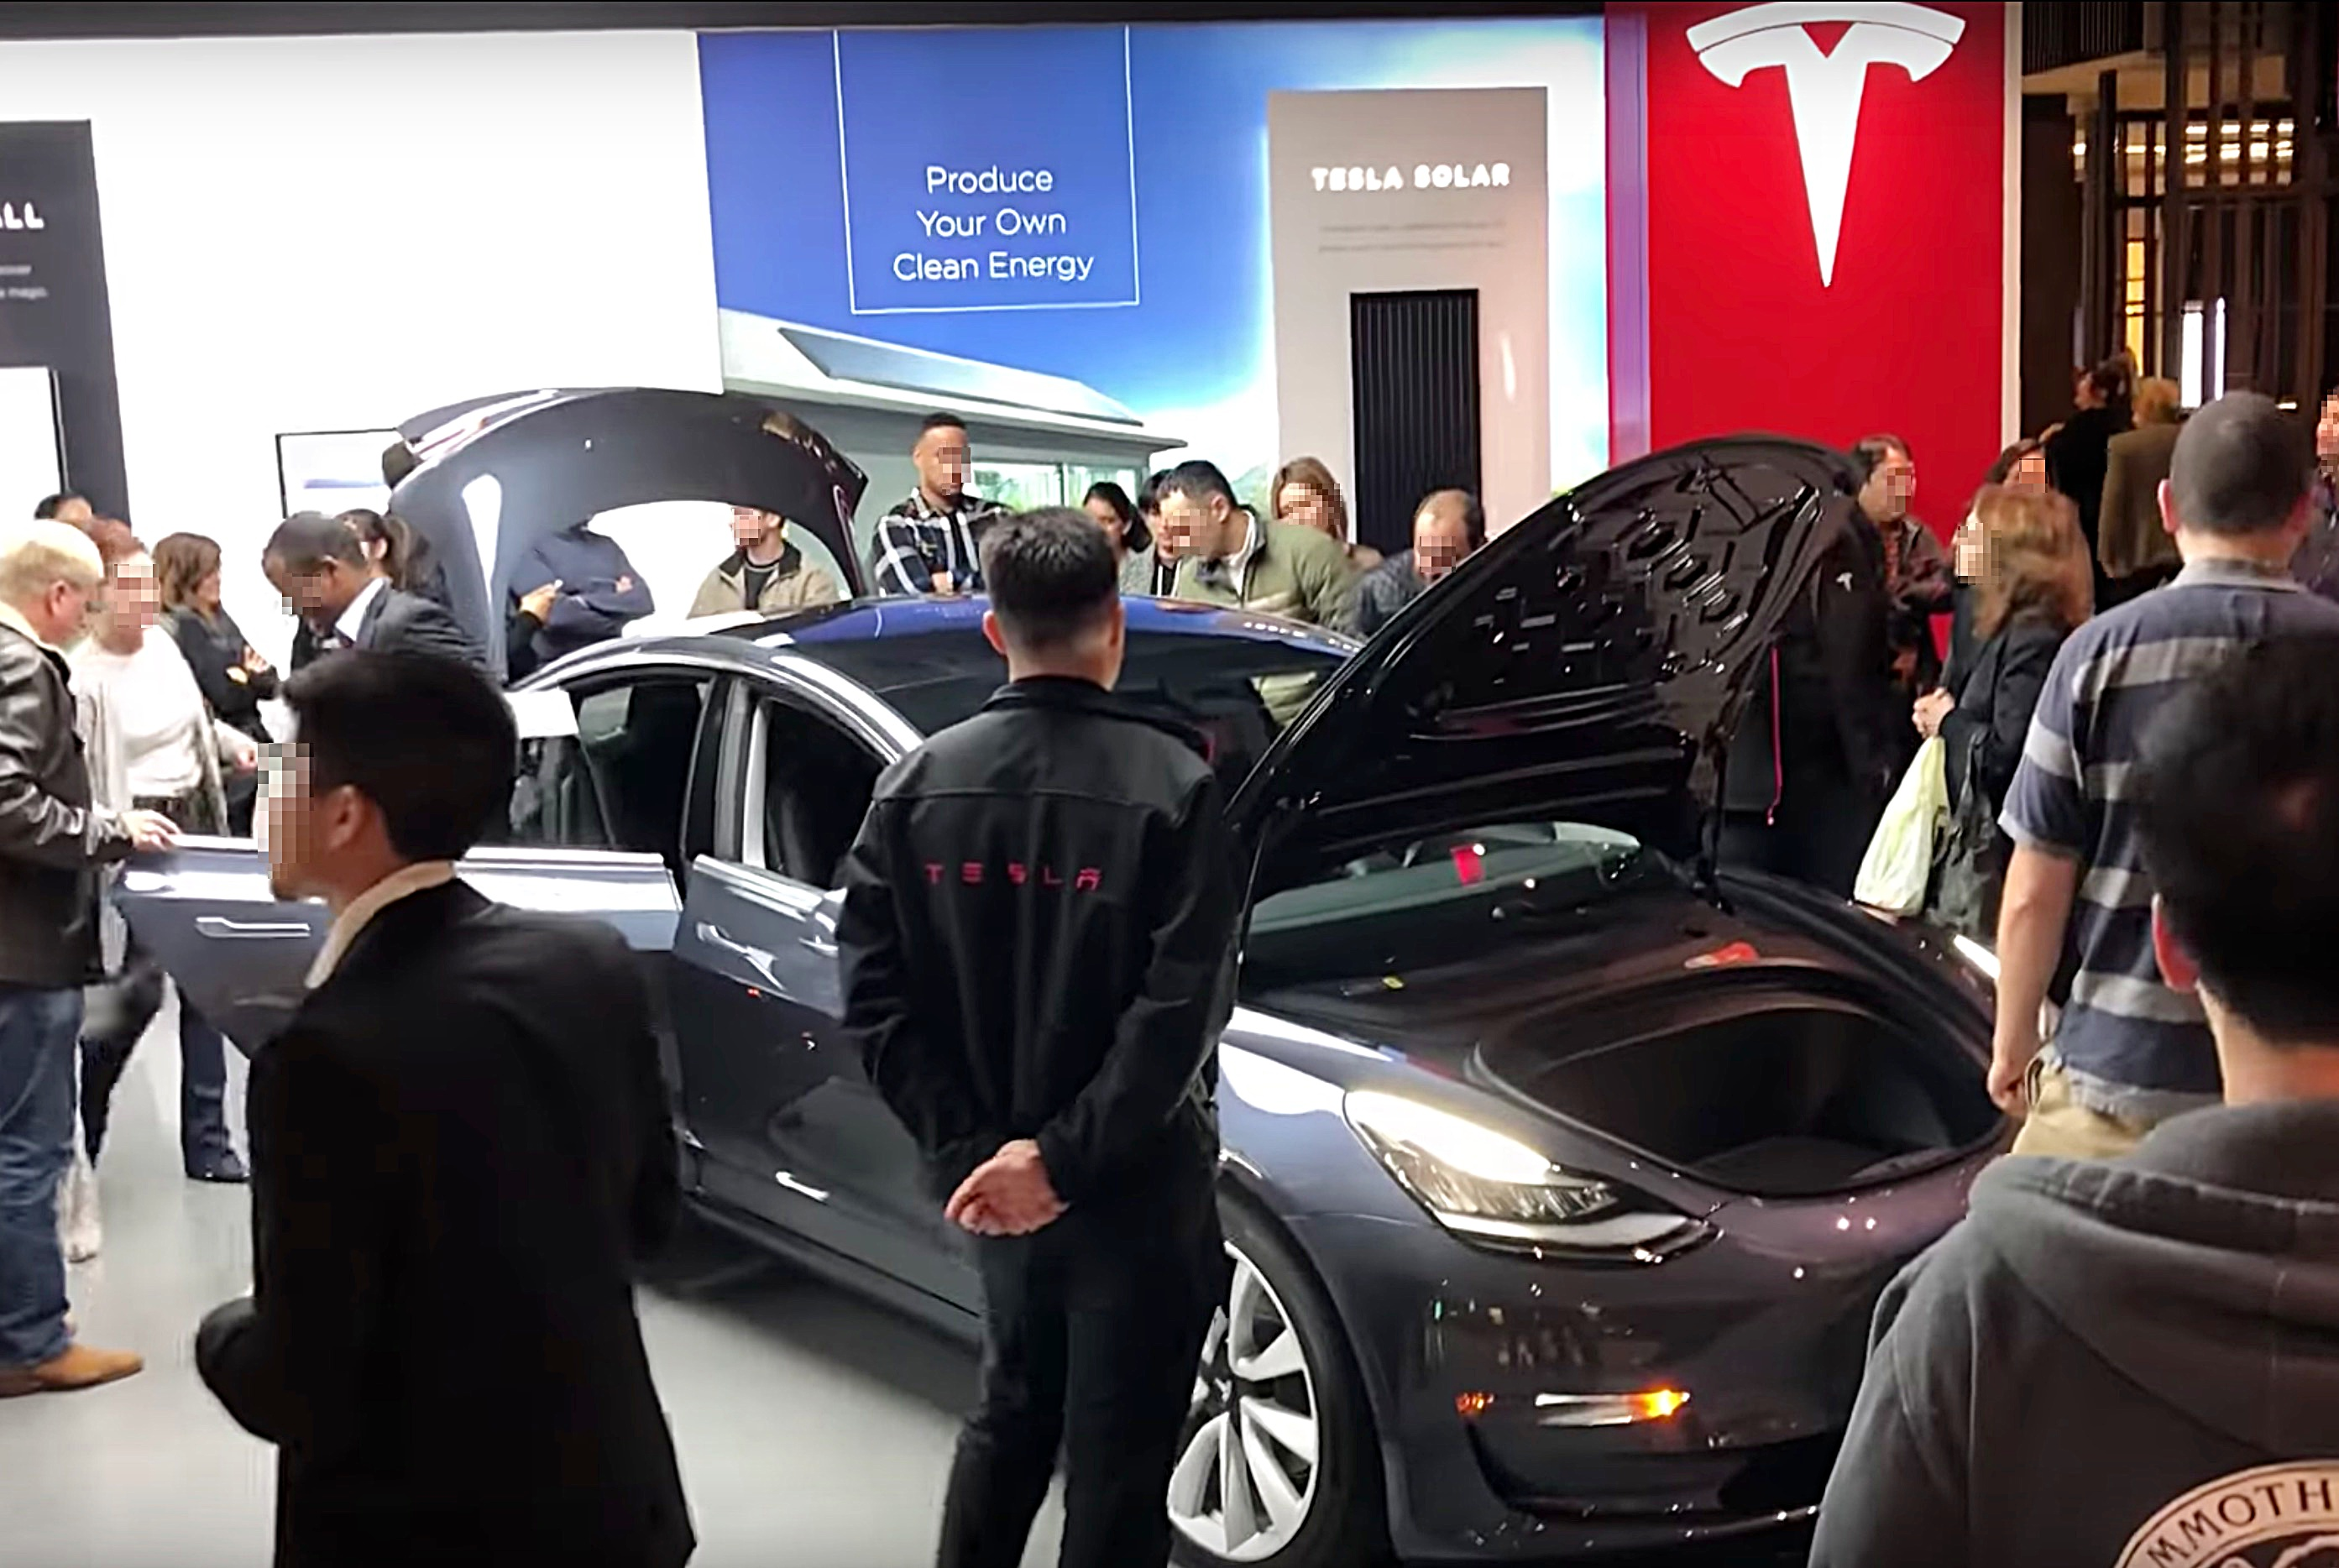 Tesla brings Model 3 to more stores across the US for public showings